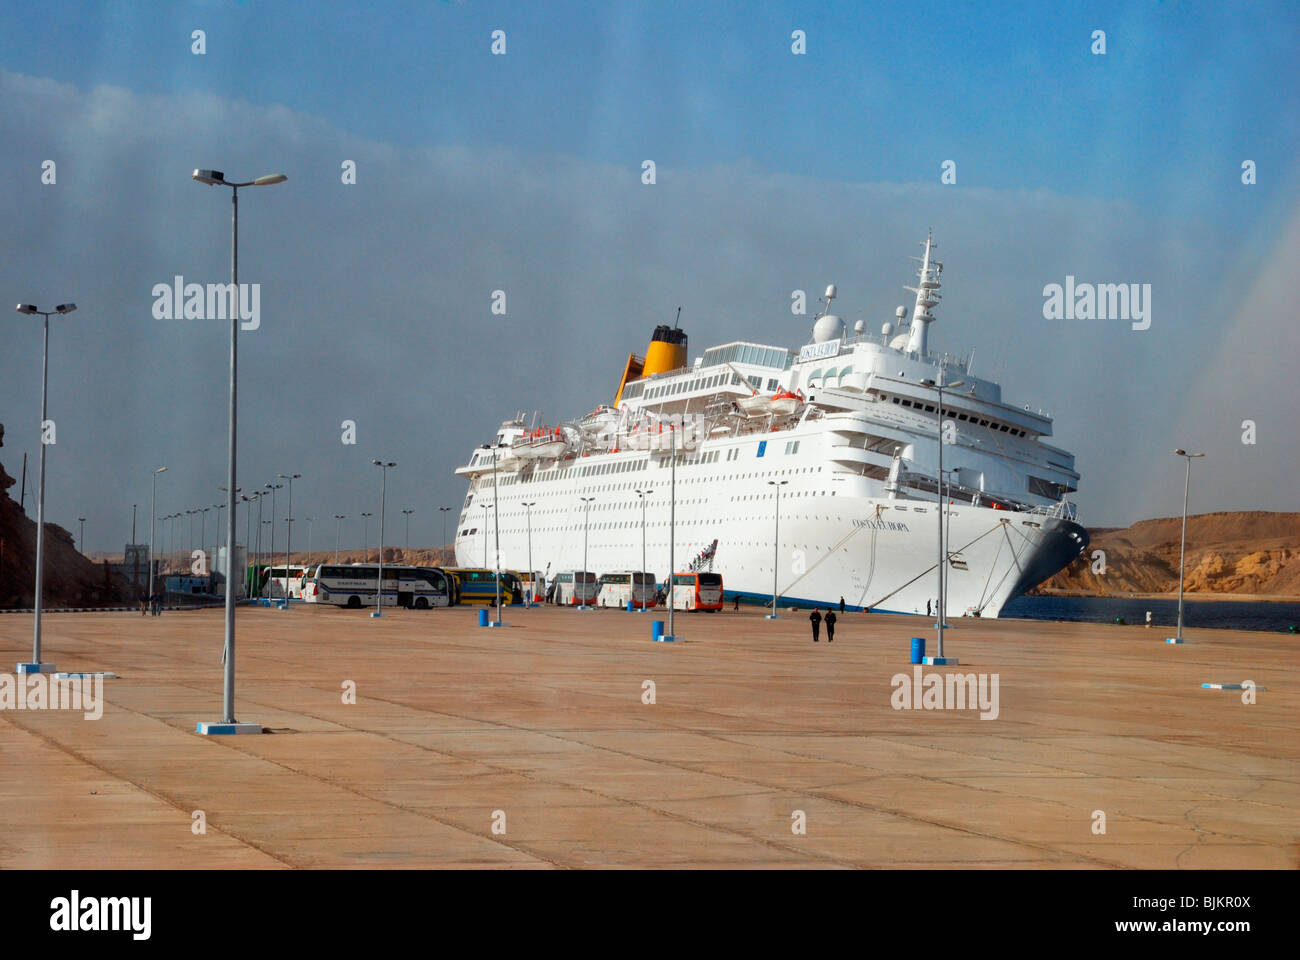 Listing COSTA EUROPA cruise ship after crashing into the quay, pier of Sharm el Sheikh on 26 February 2010, Egypt, - Stock Image